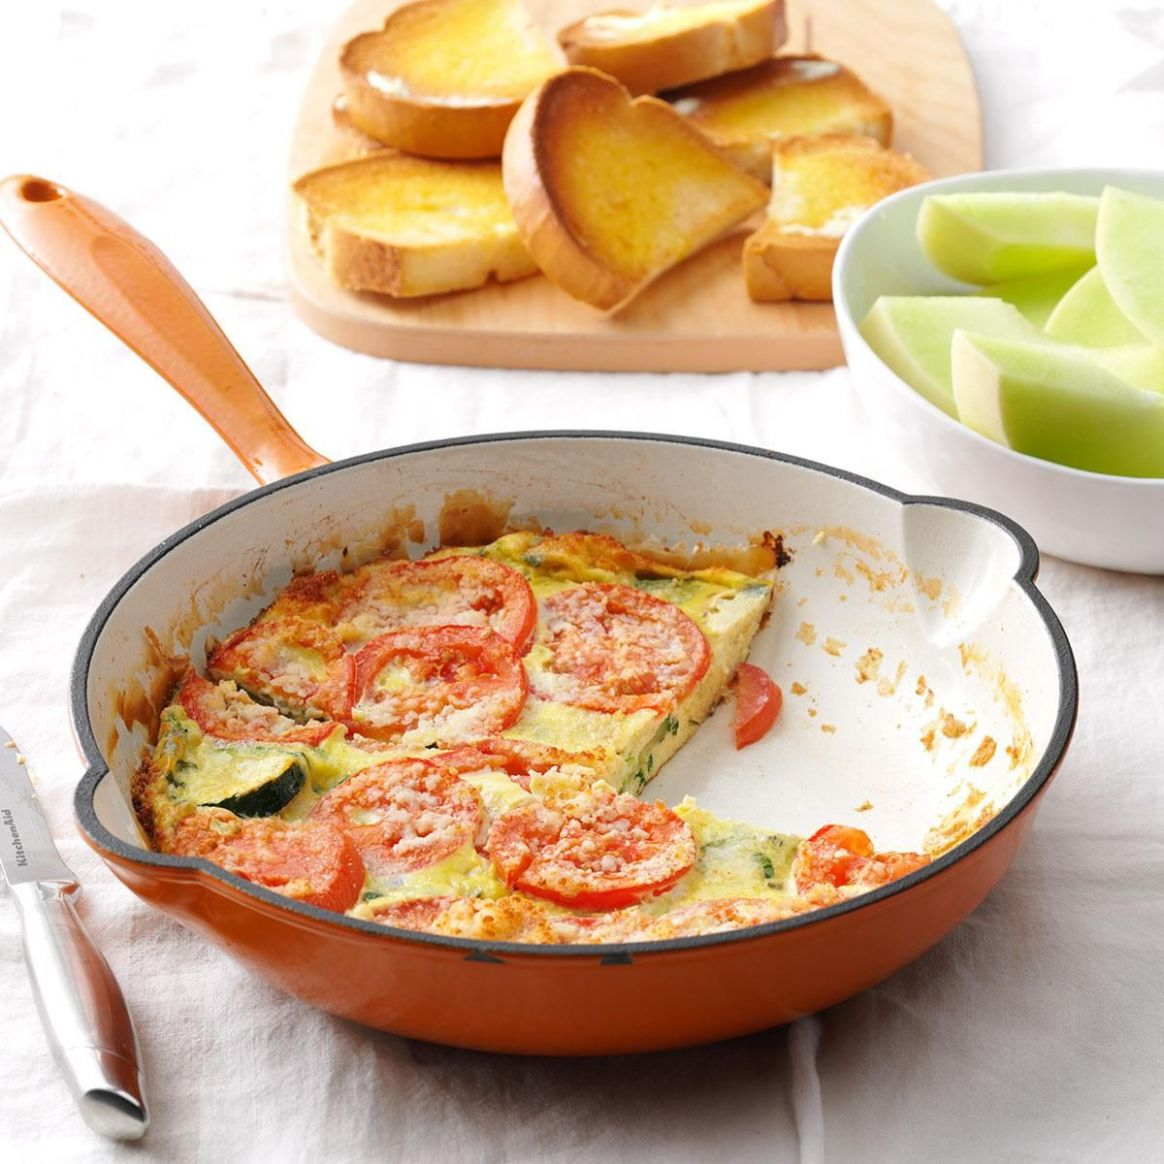 Italian Garden Frittata - Breakfast Recipes Under 200 Calories